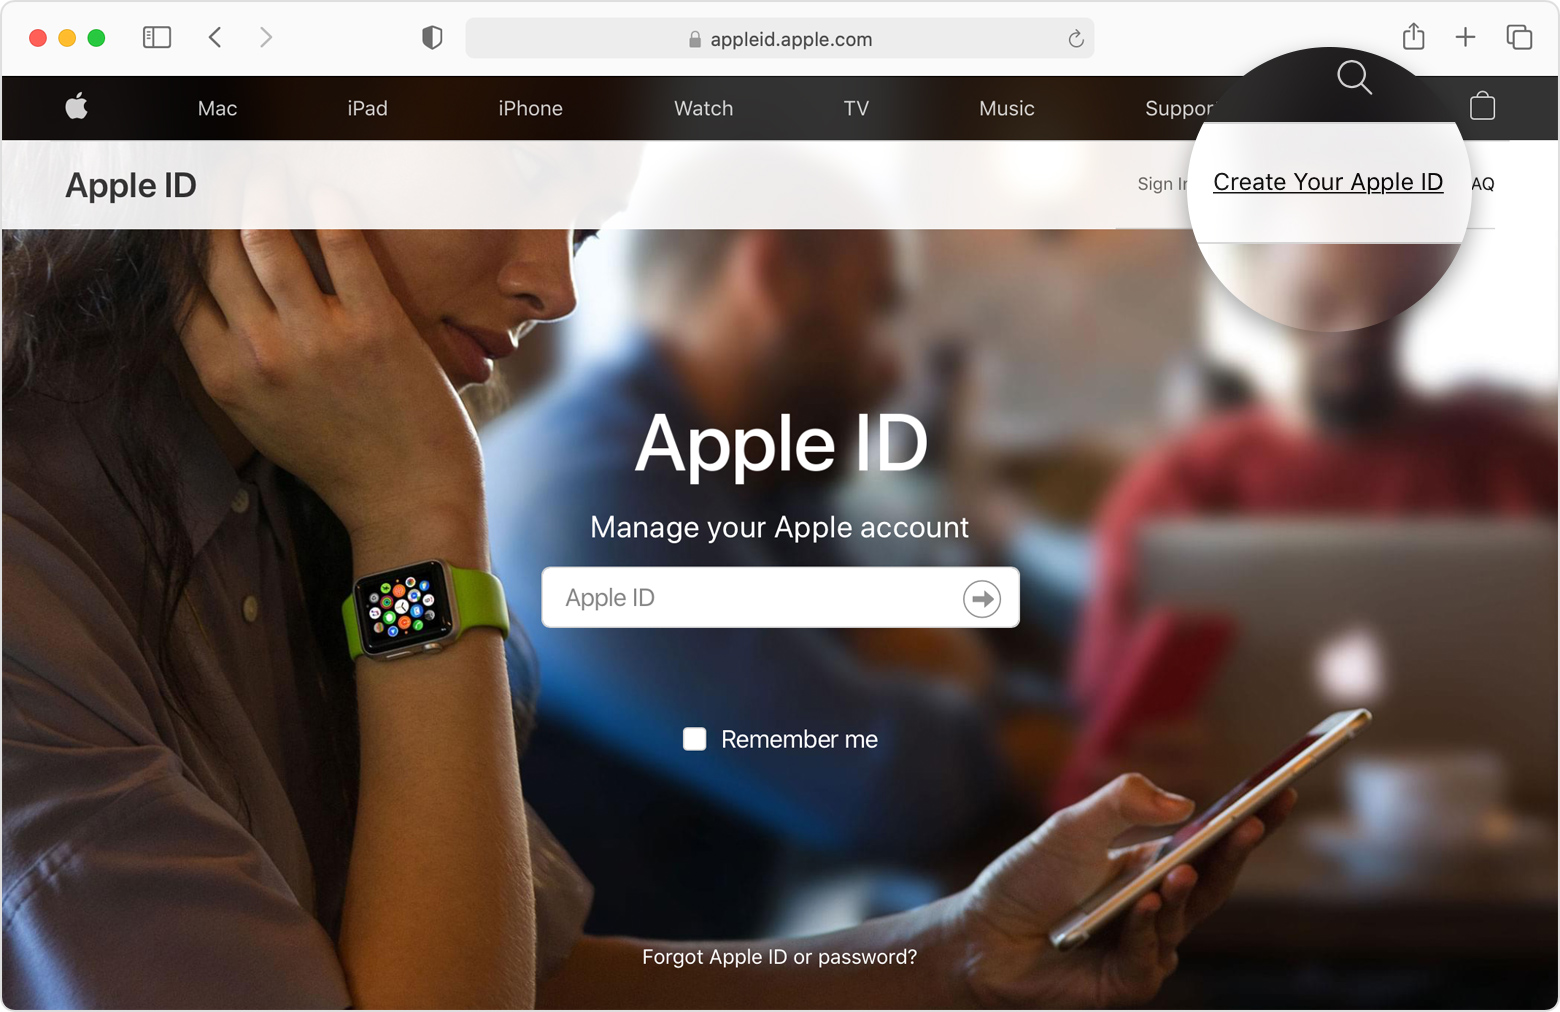 Safari browser window open to appleid.apple.com with the